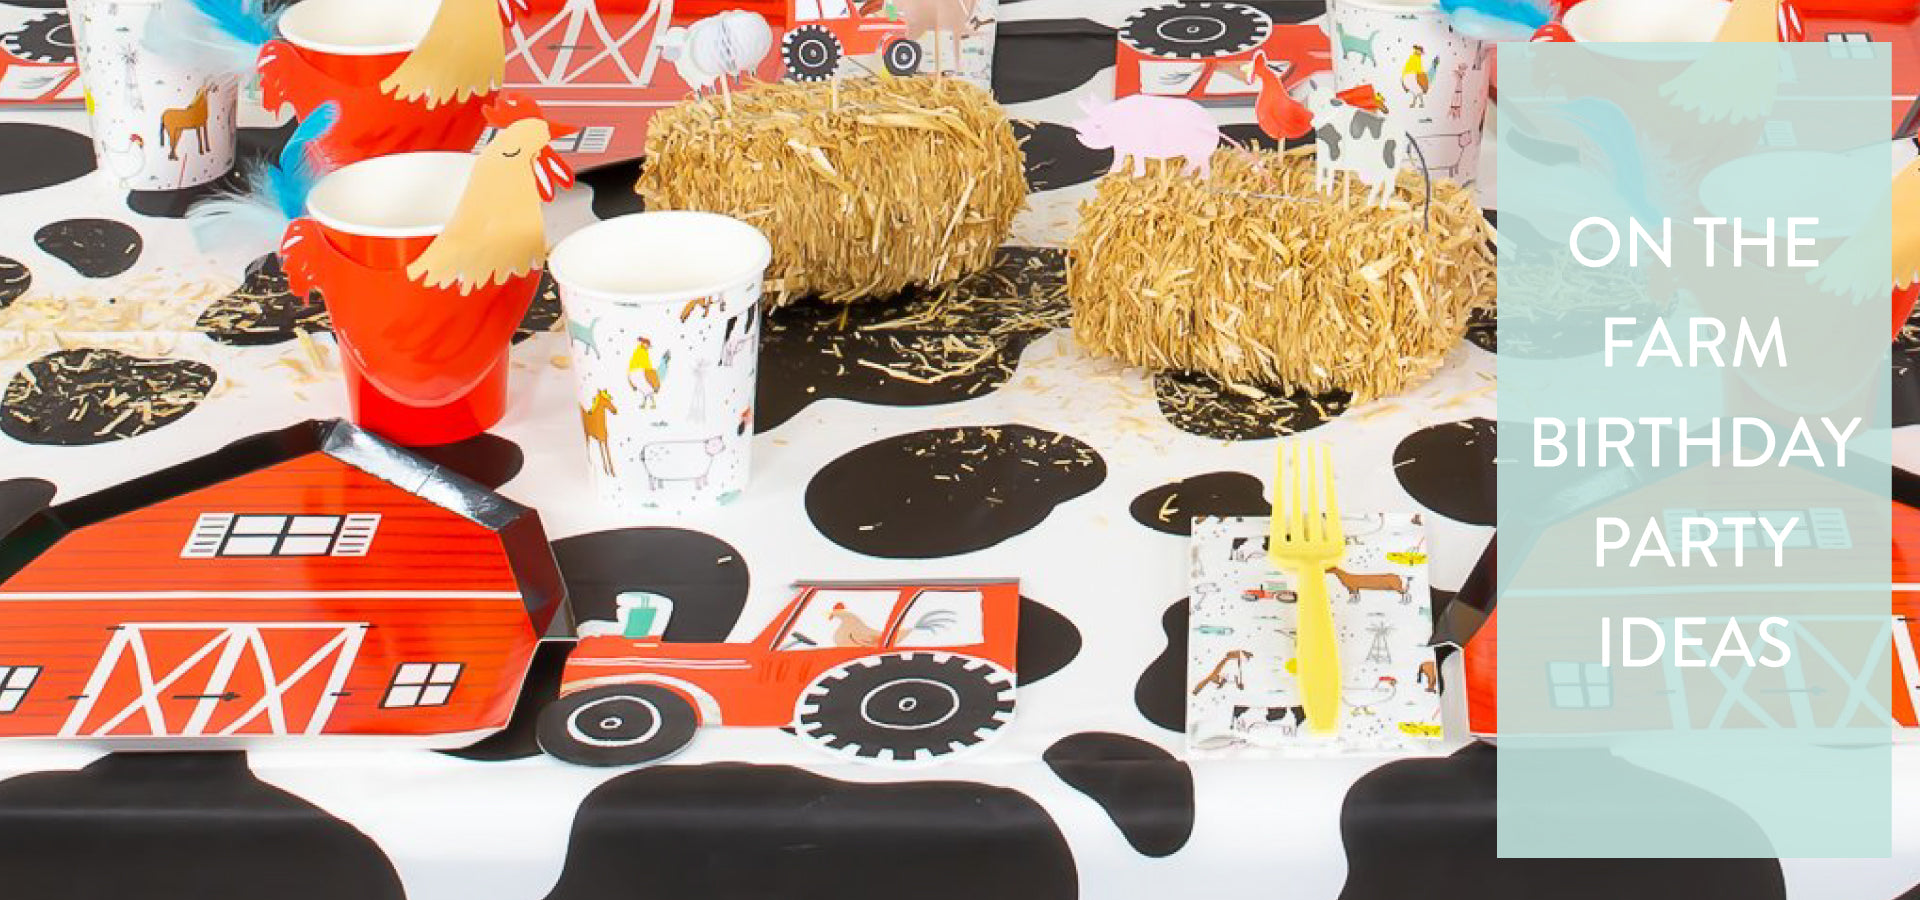 On the Farm Birthday Party Ideas | The Party Darling